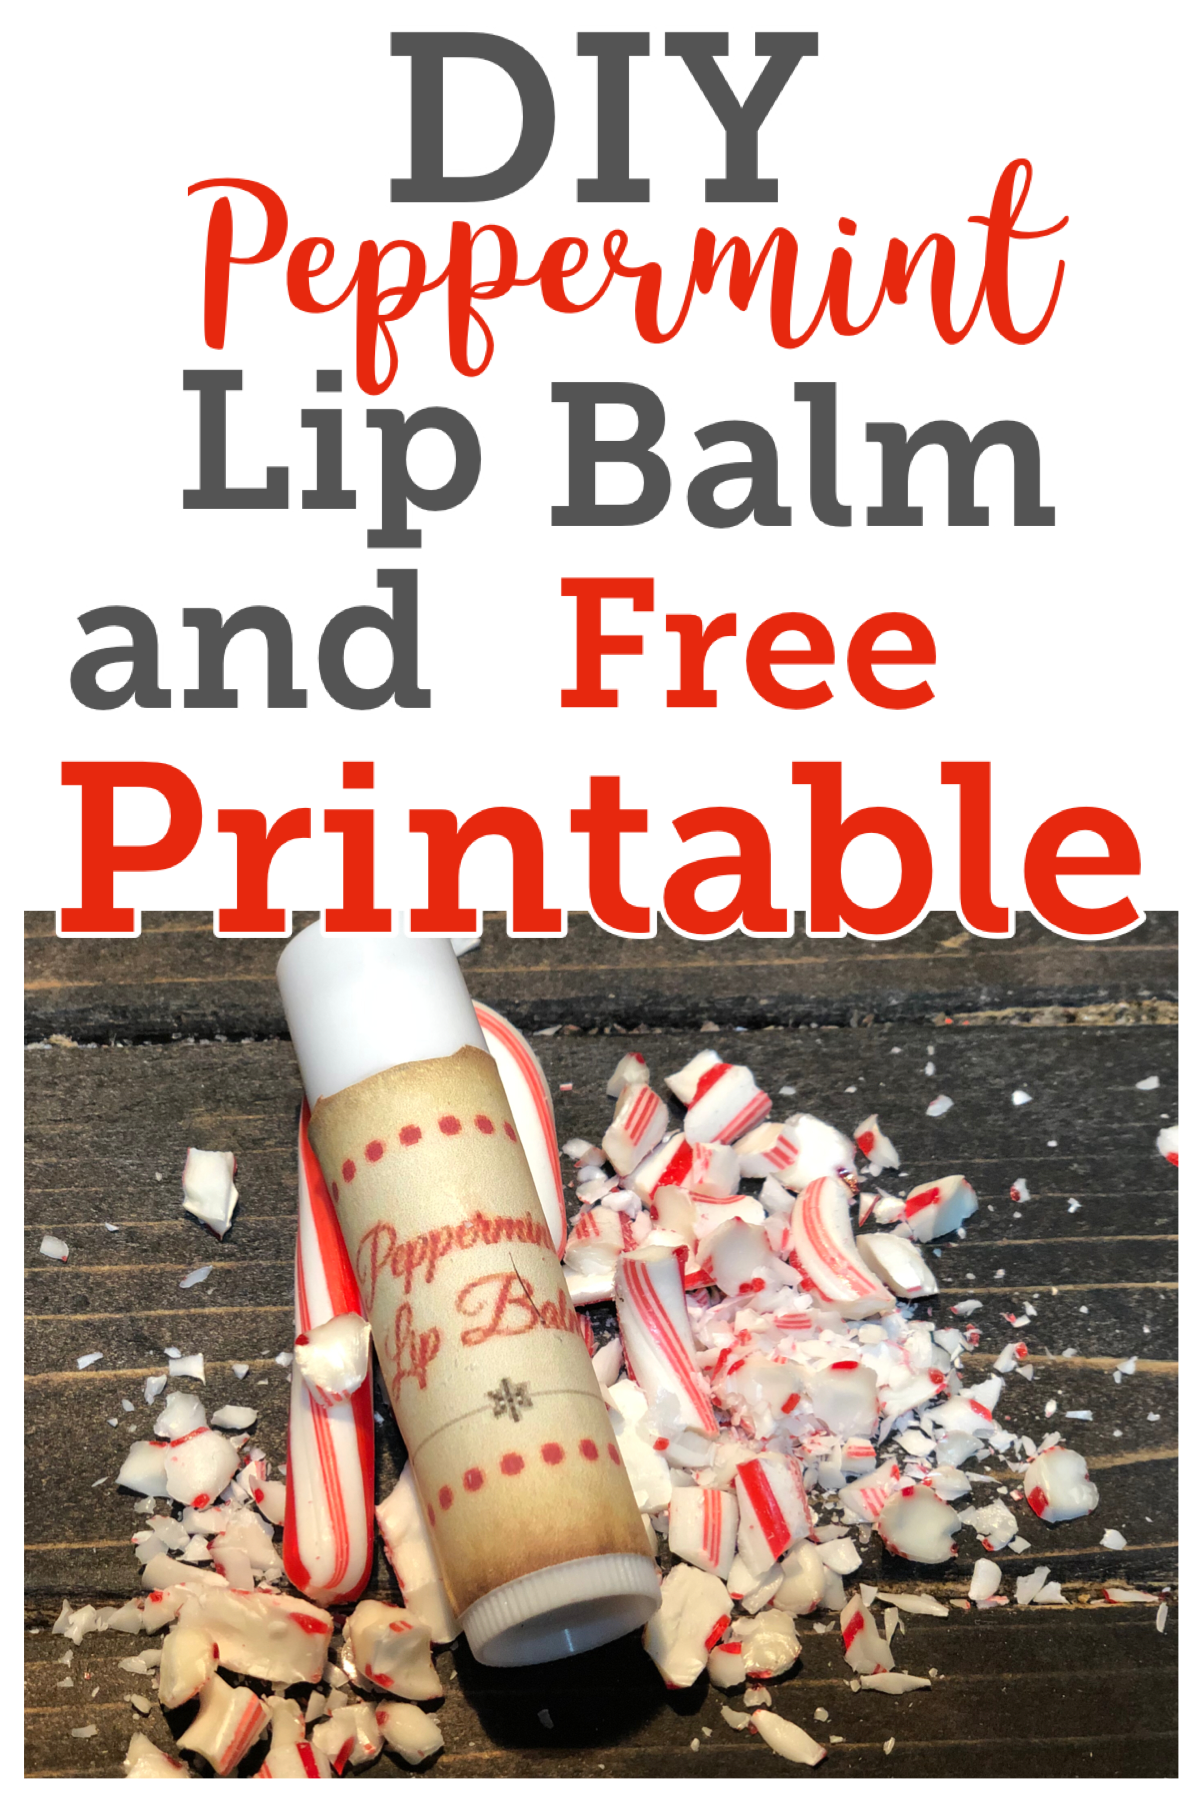 DIY Peppermint Lip Balm, make this homemade lip balm for the perfect Christmas gift that can be made right in your kitchen in a matter of minutes! FrugallyFantastic.com